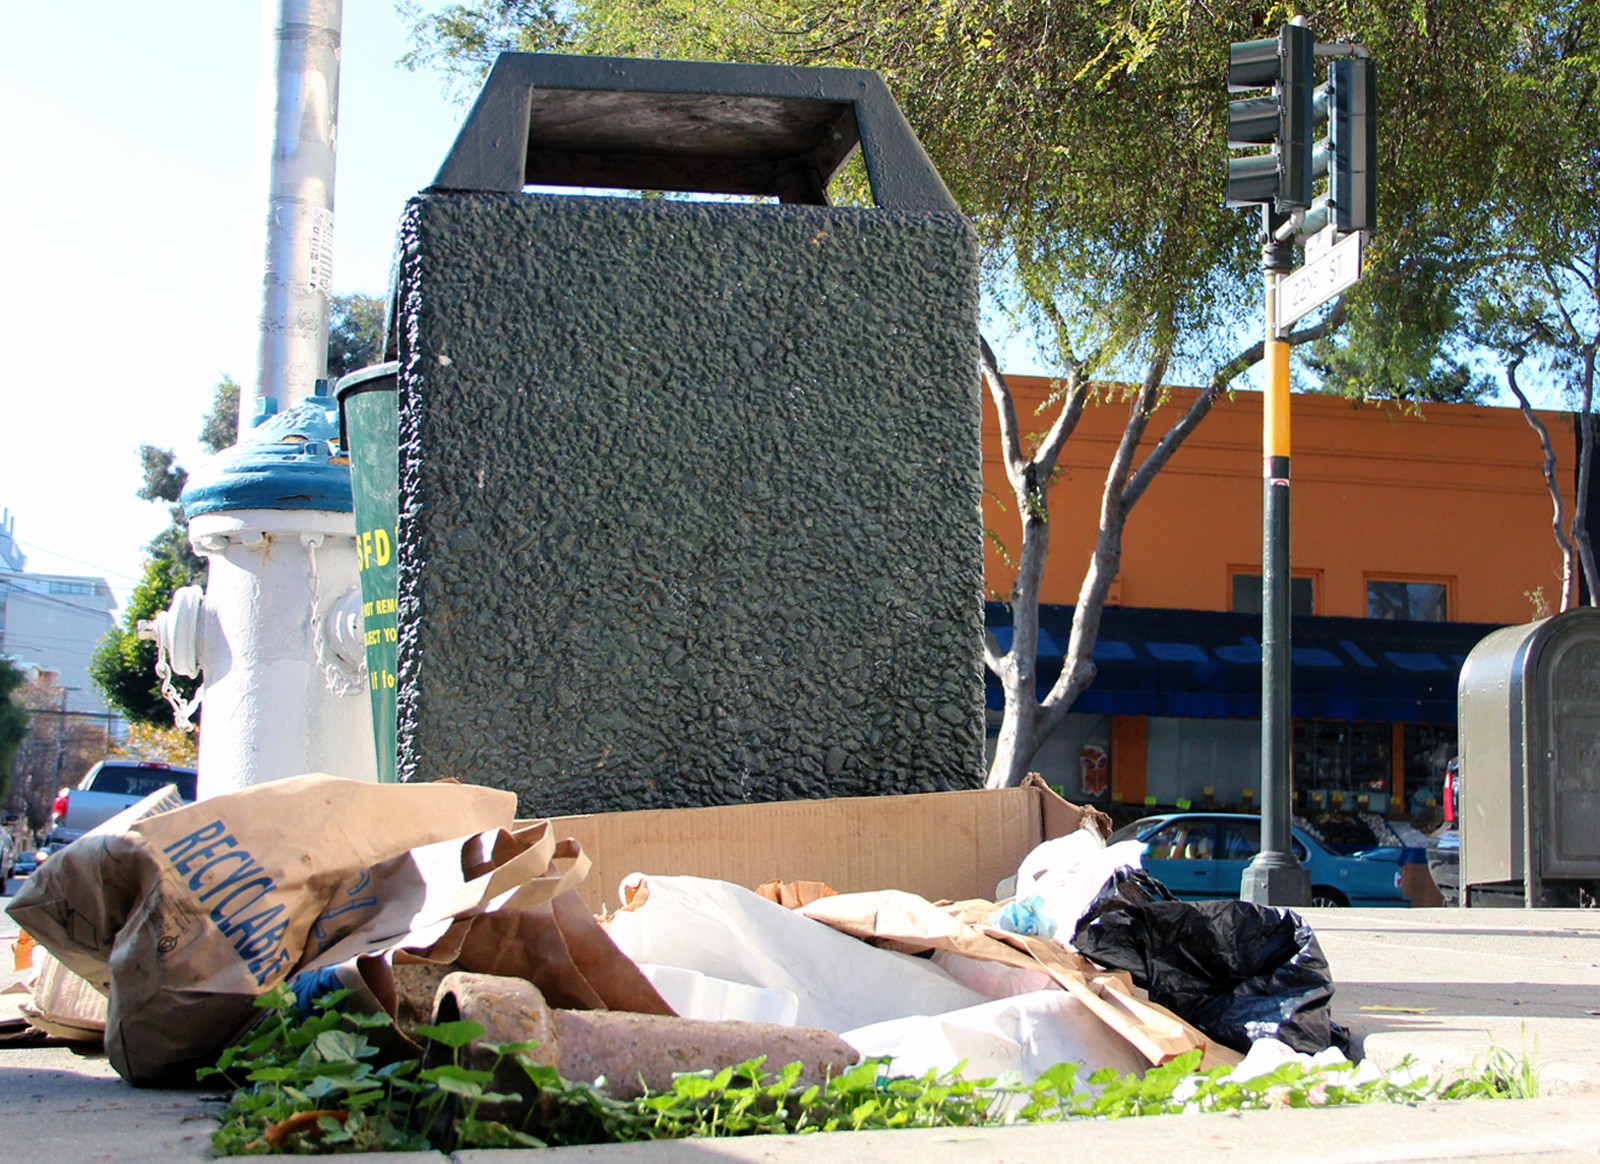 Got Trash? City Relies on Education to Sort It